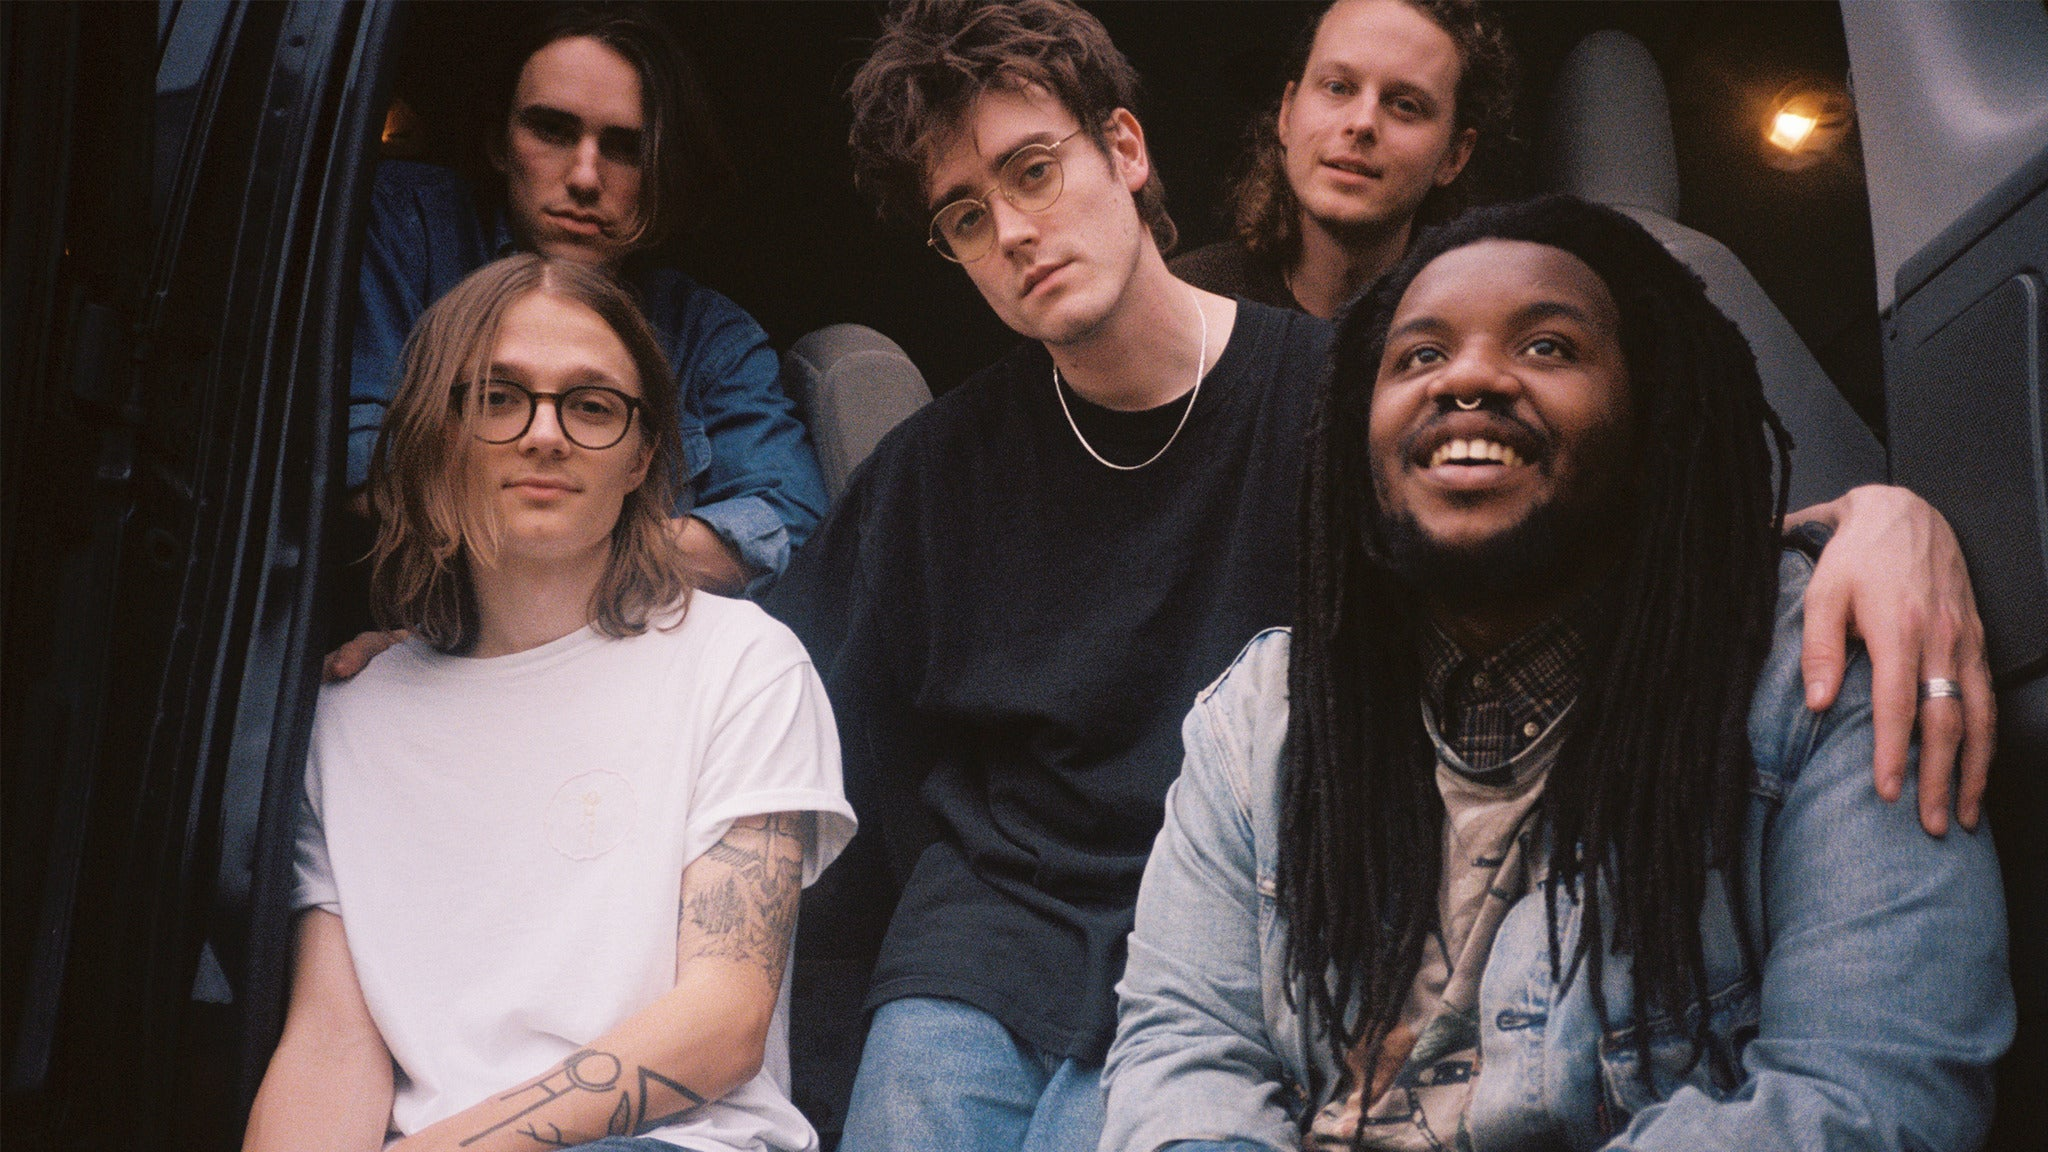 Image used with permission from Ticketmaster | Hippo Campus tickets